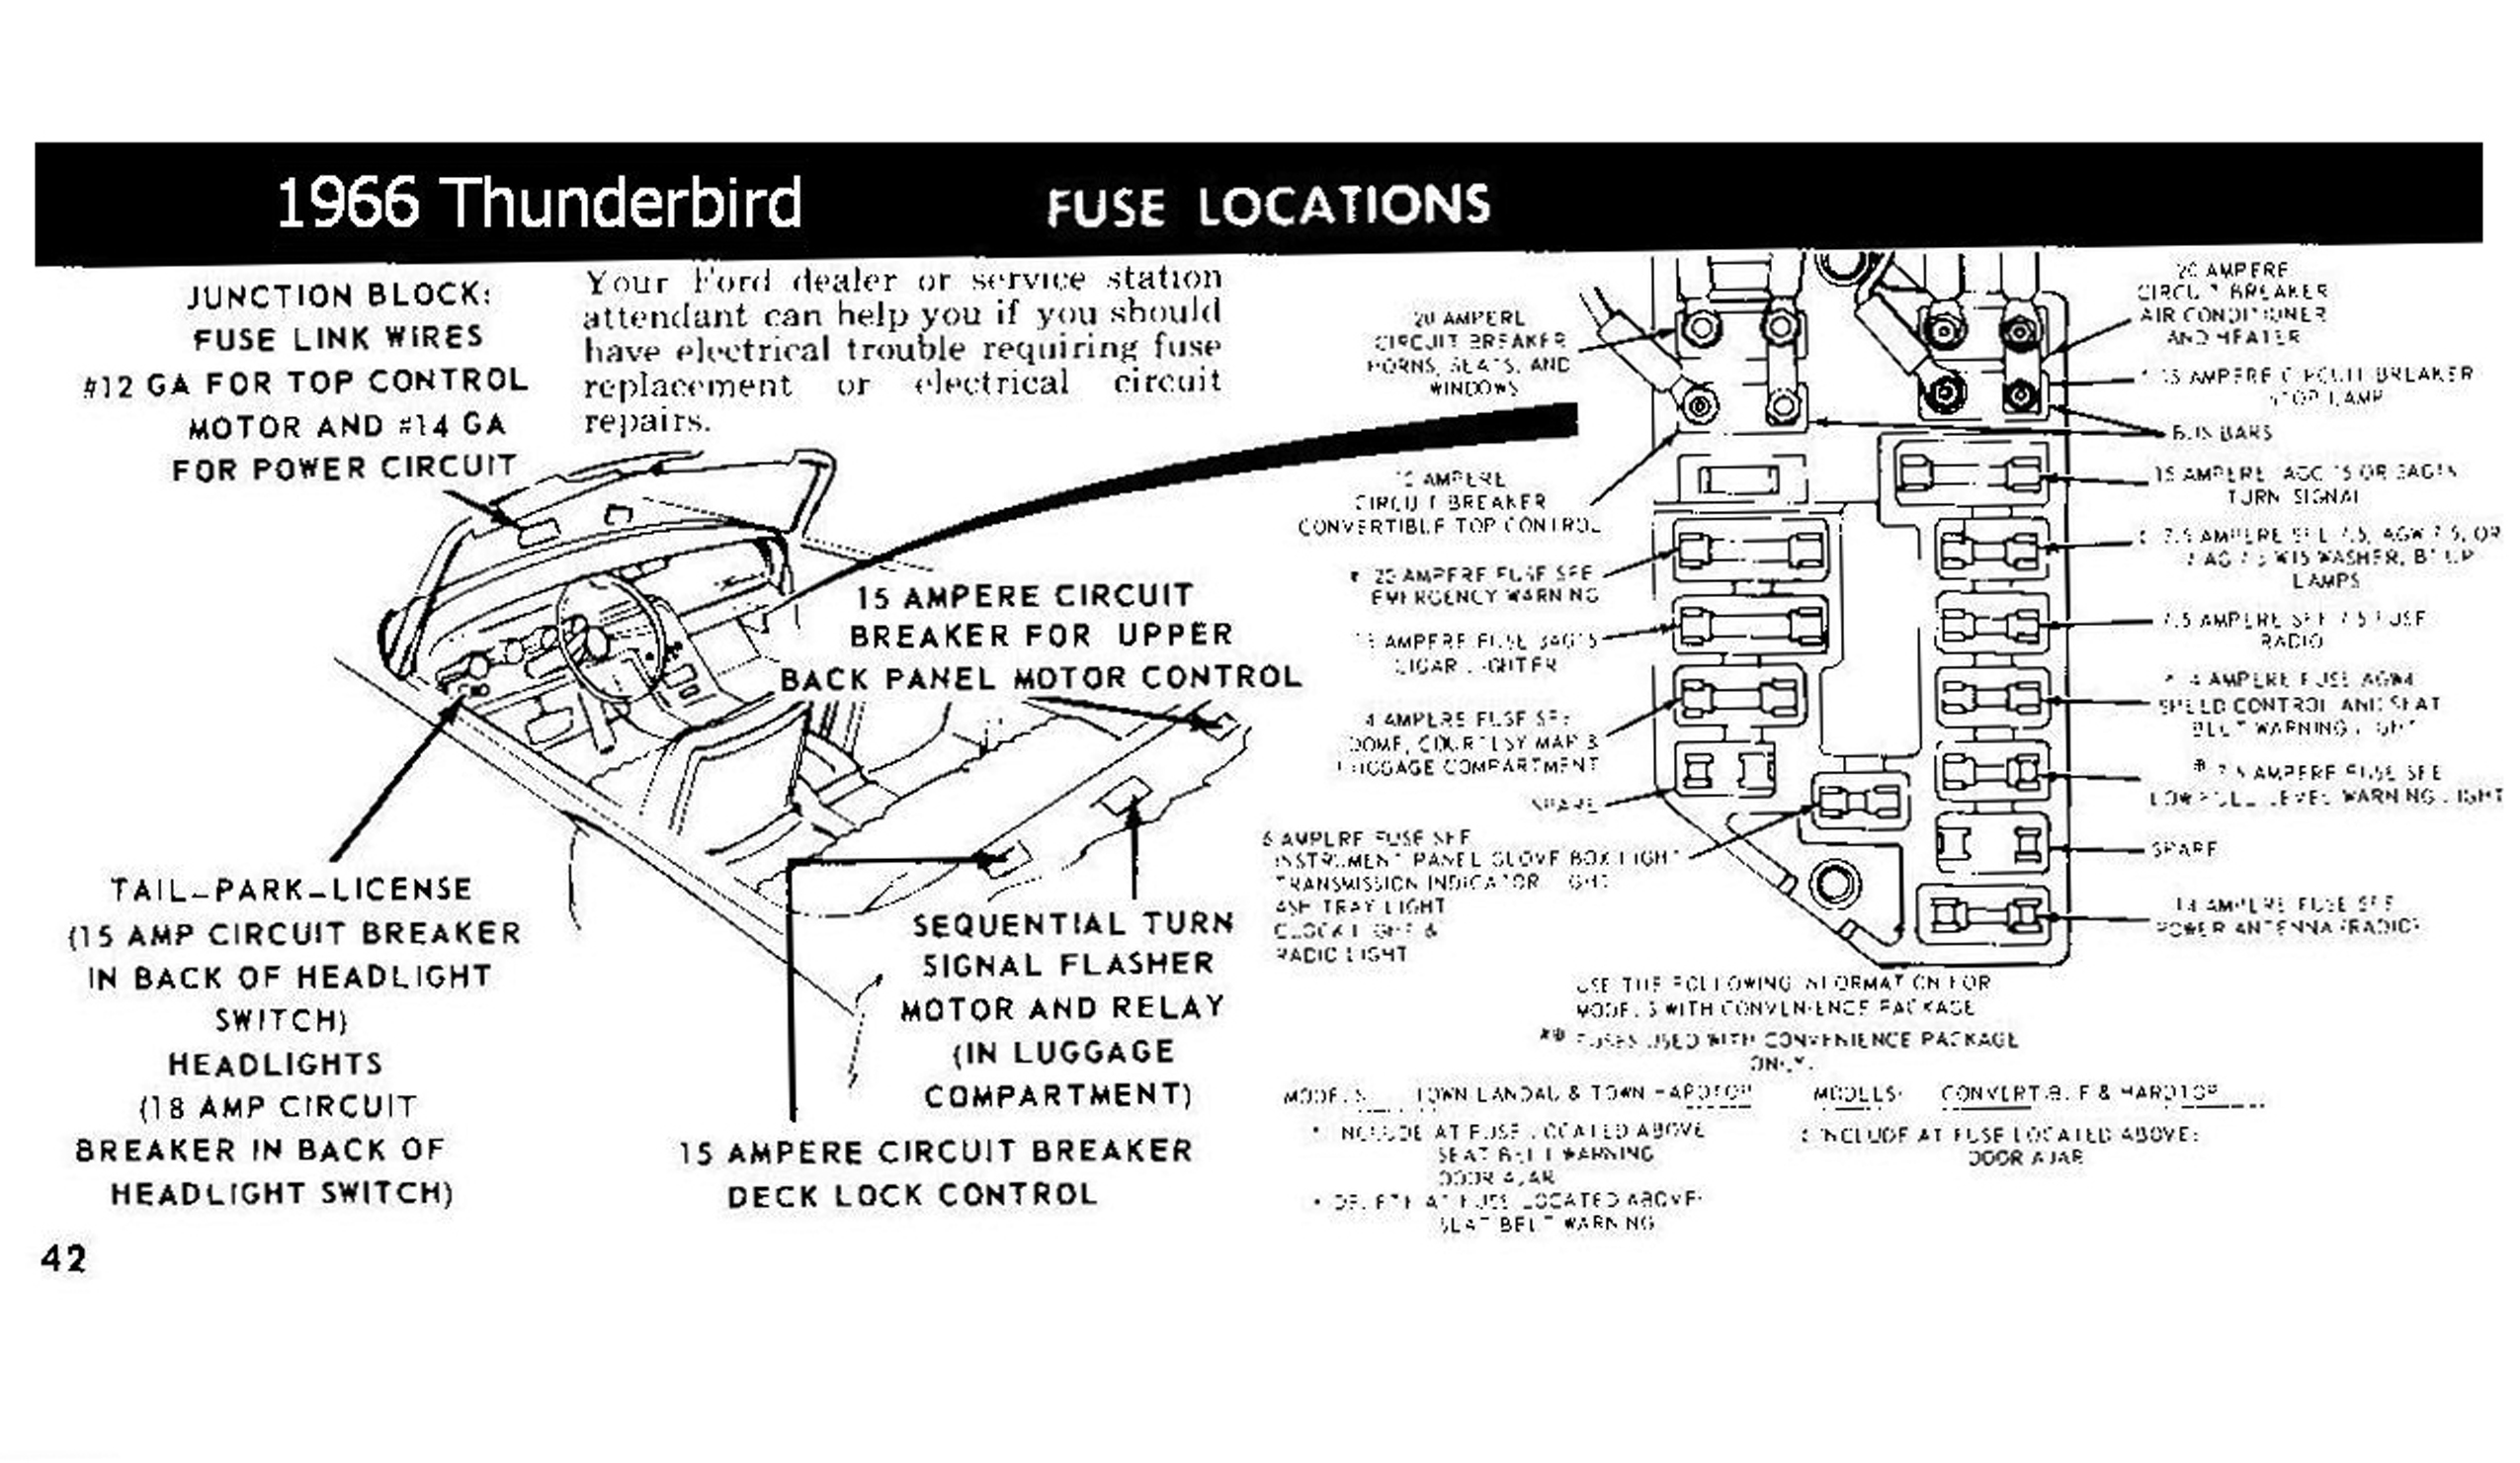 Ford Thunderbird Fuse Box Location